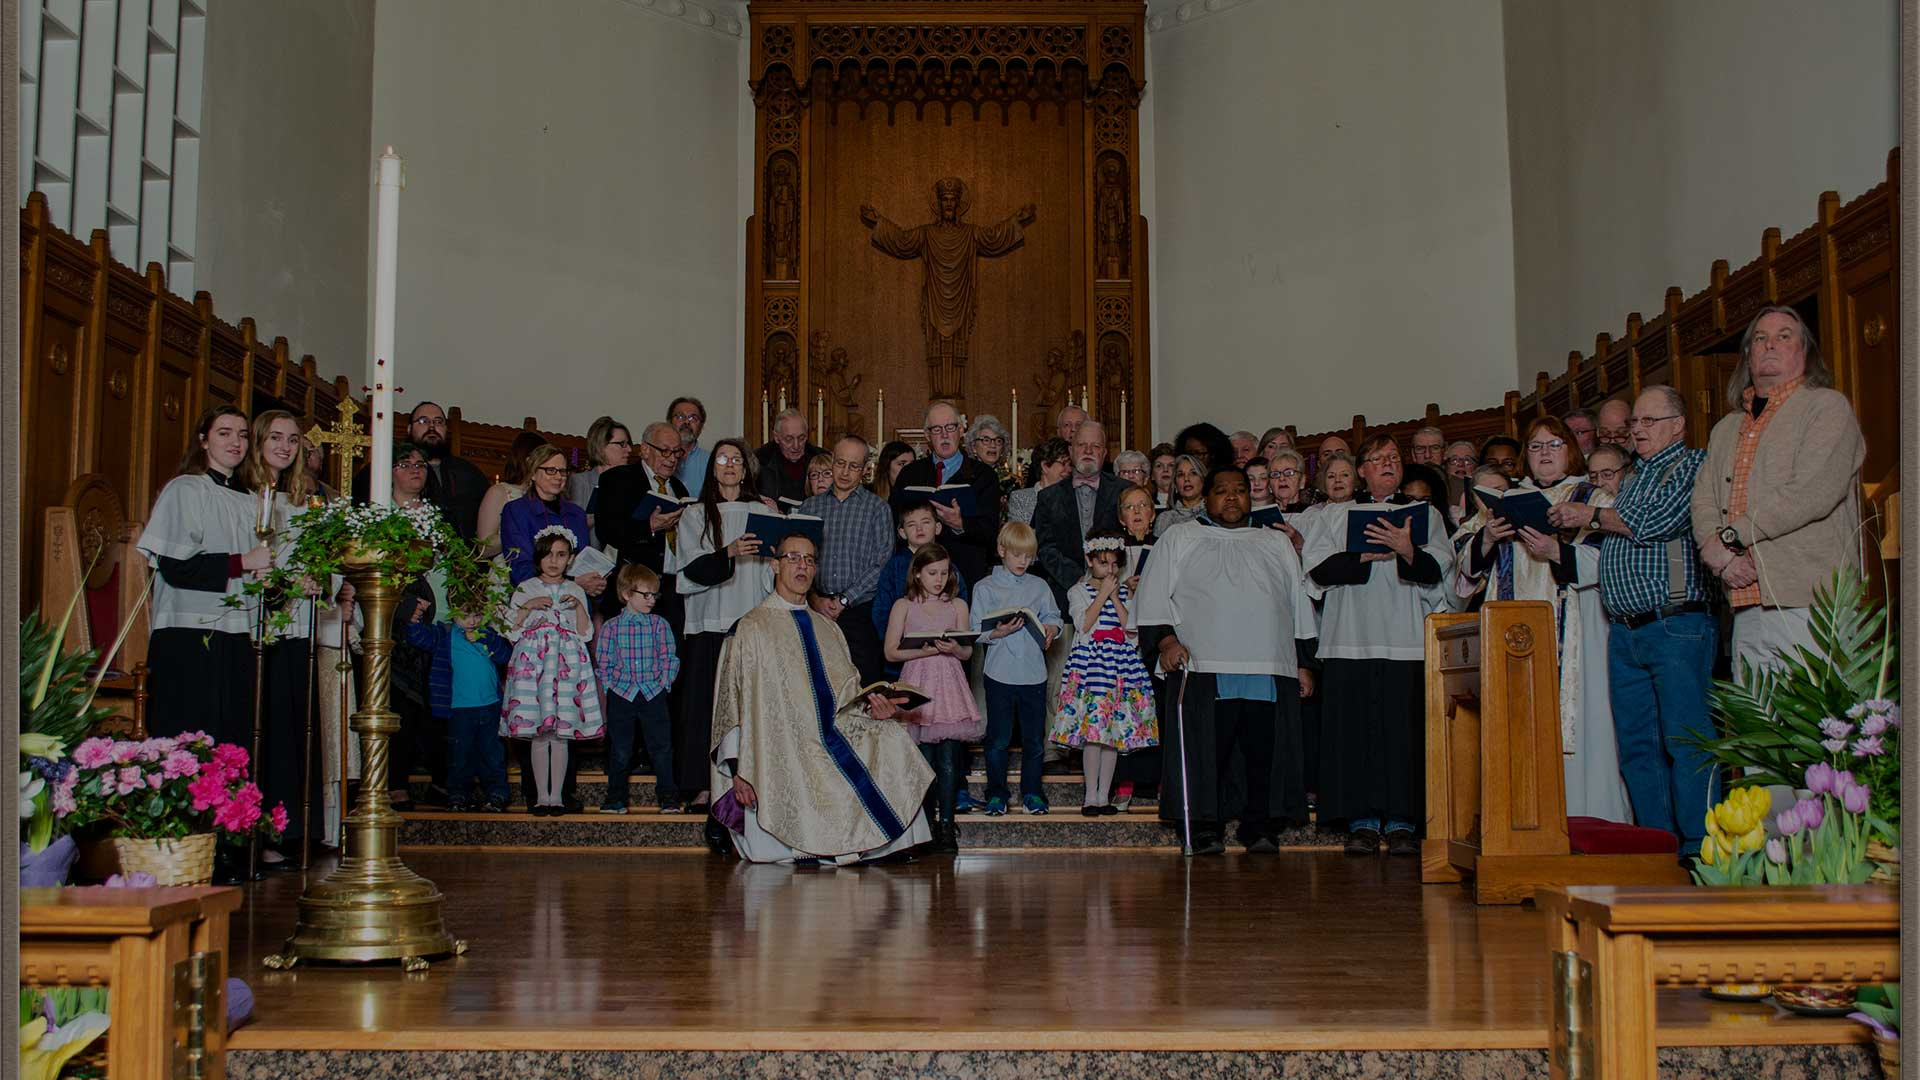 Members of the church standing at the altar singing.